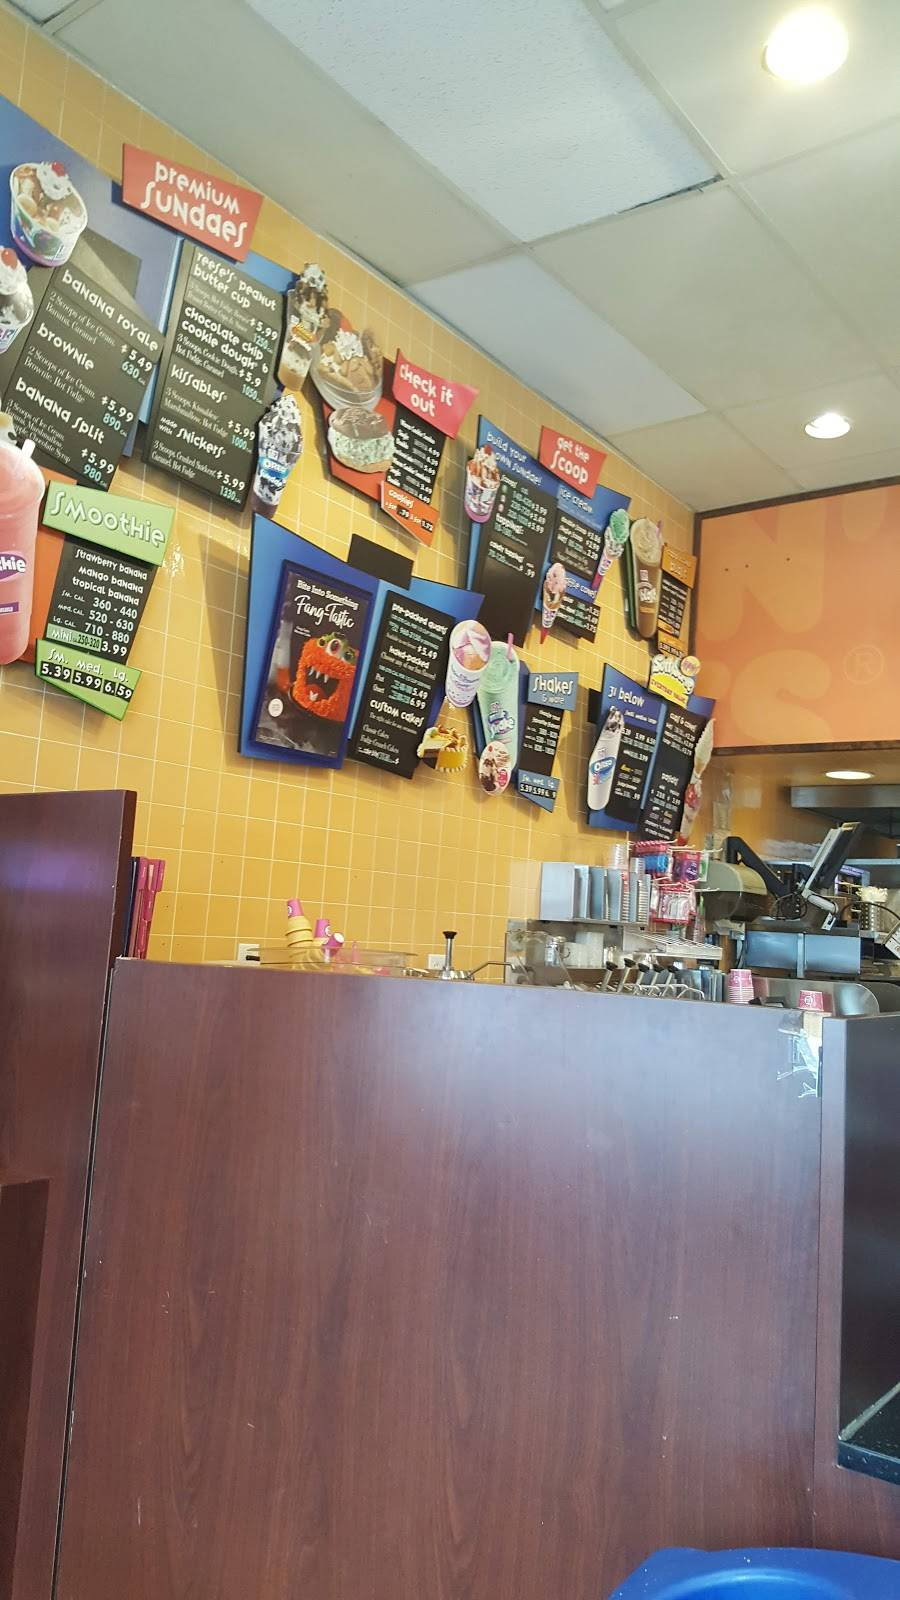 Dunkin Donuts | cafe | 1880 3rd Ave, New York, NY 10029, USA | 2124263131 OR +1 212-426-3131